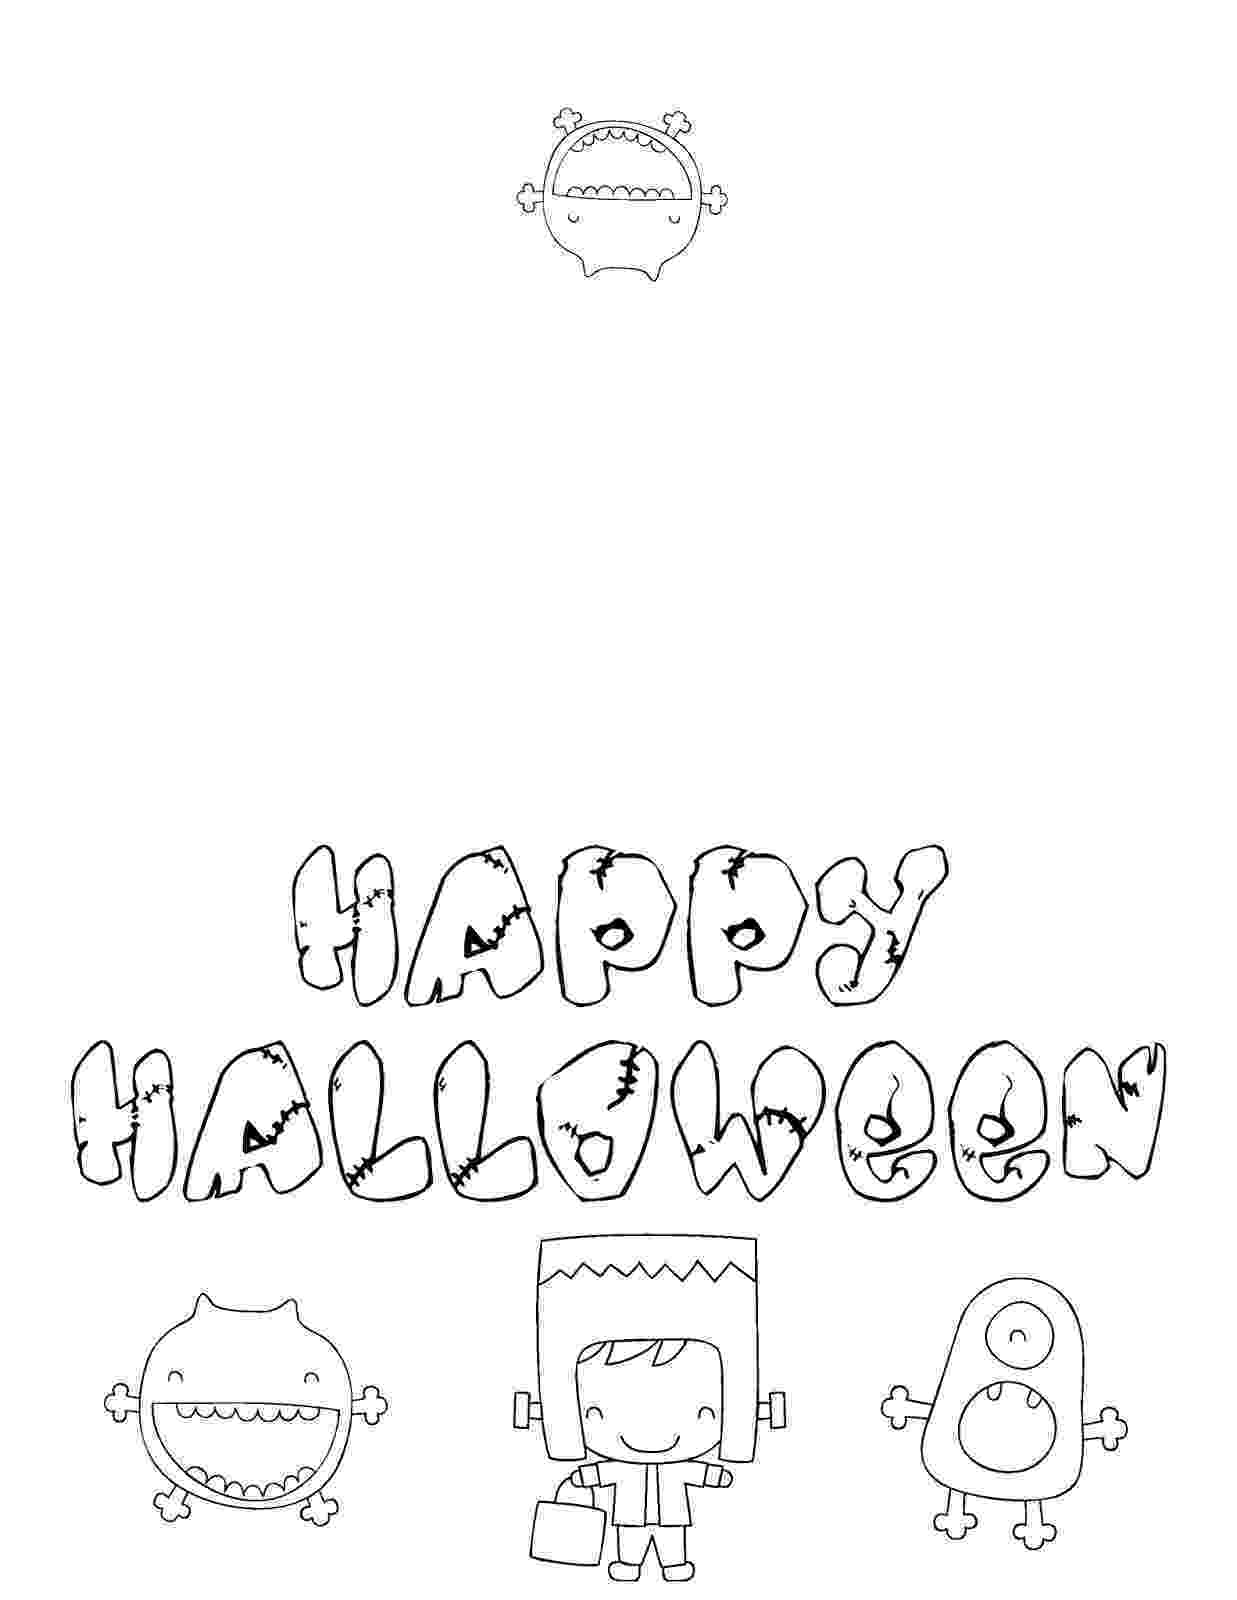 printable colouring halloween cards free printable halloween coloring cards cards create and printable cards halloween colouring 1 1